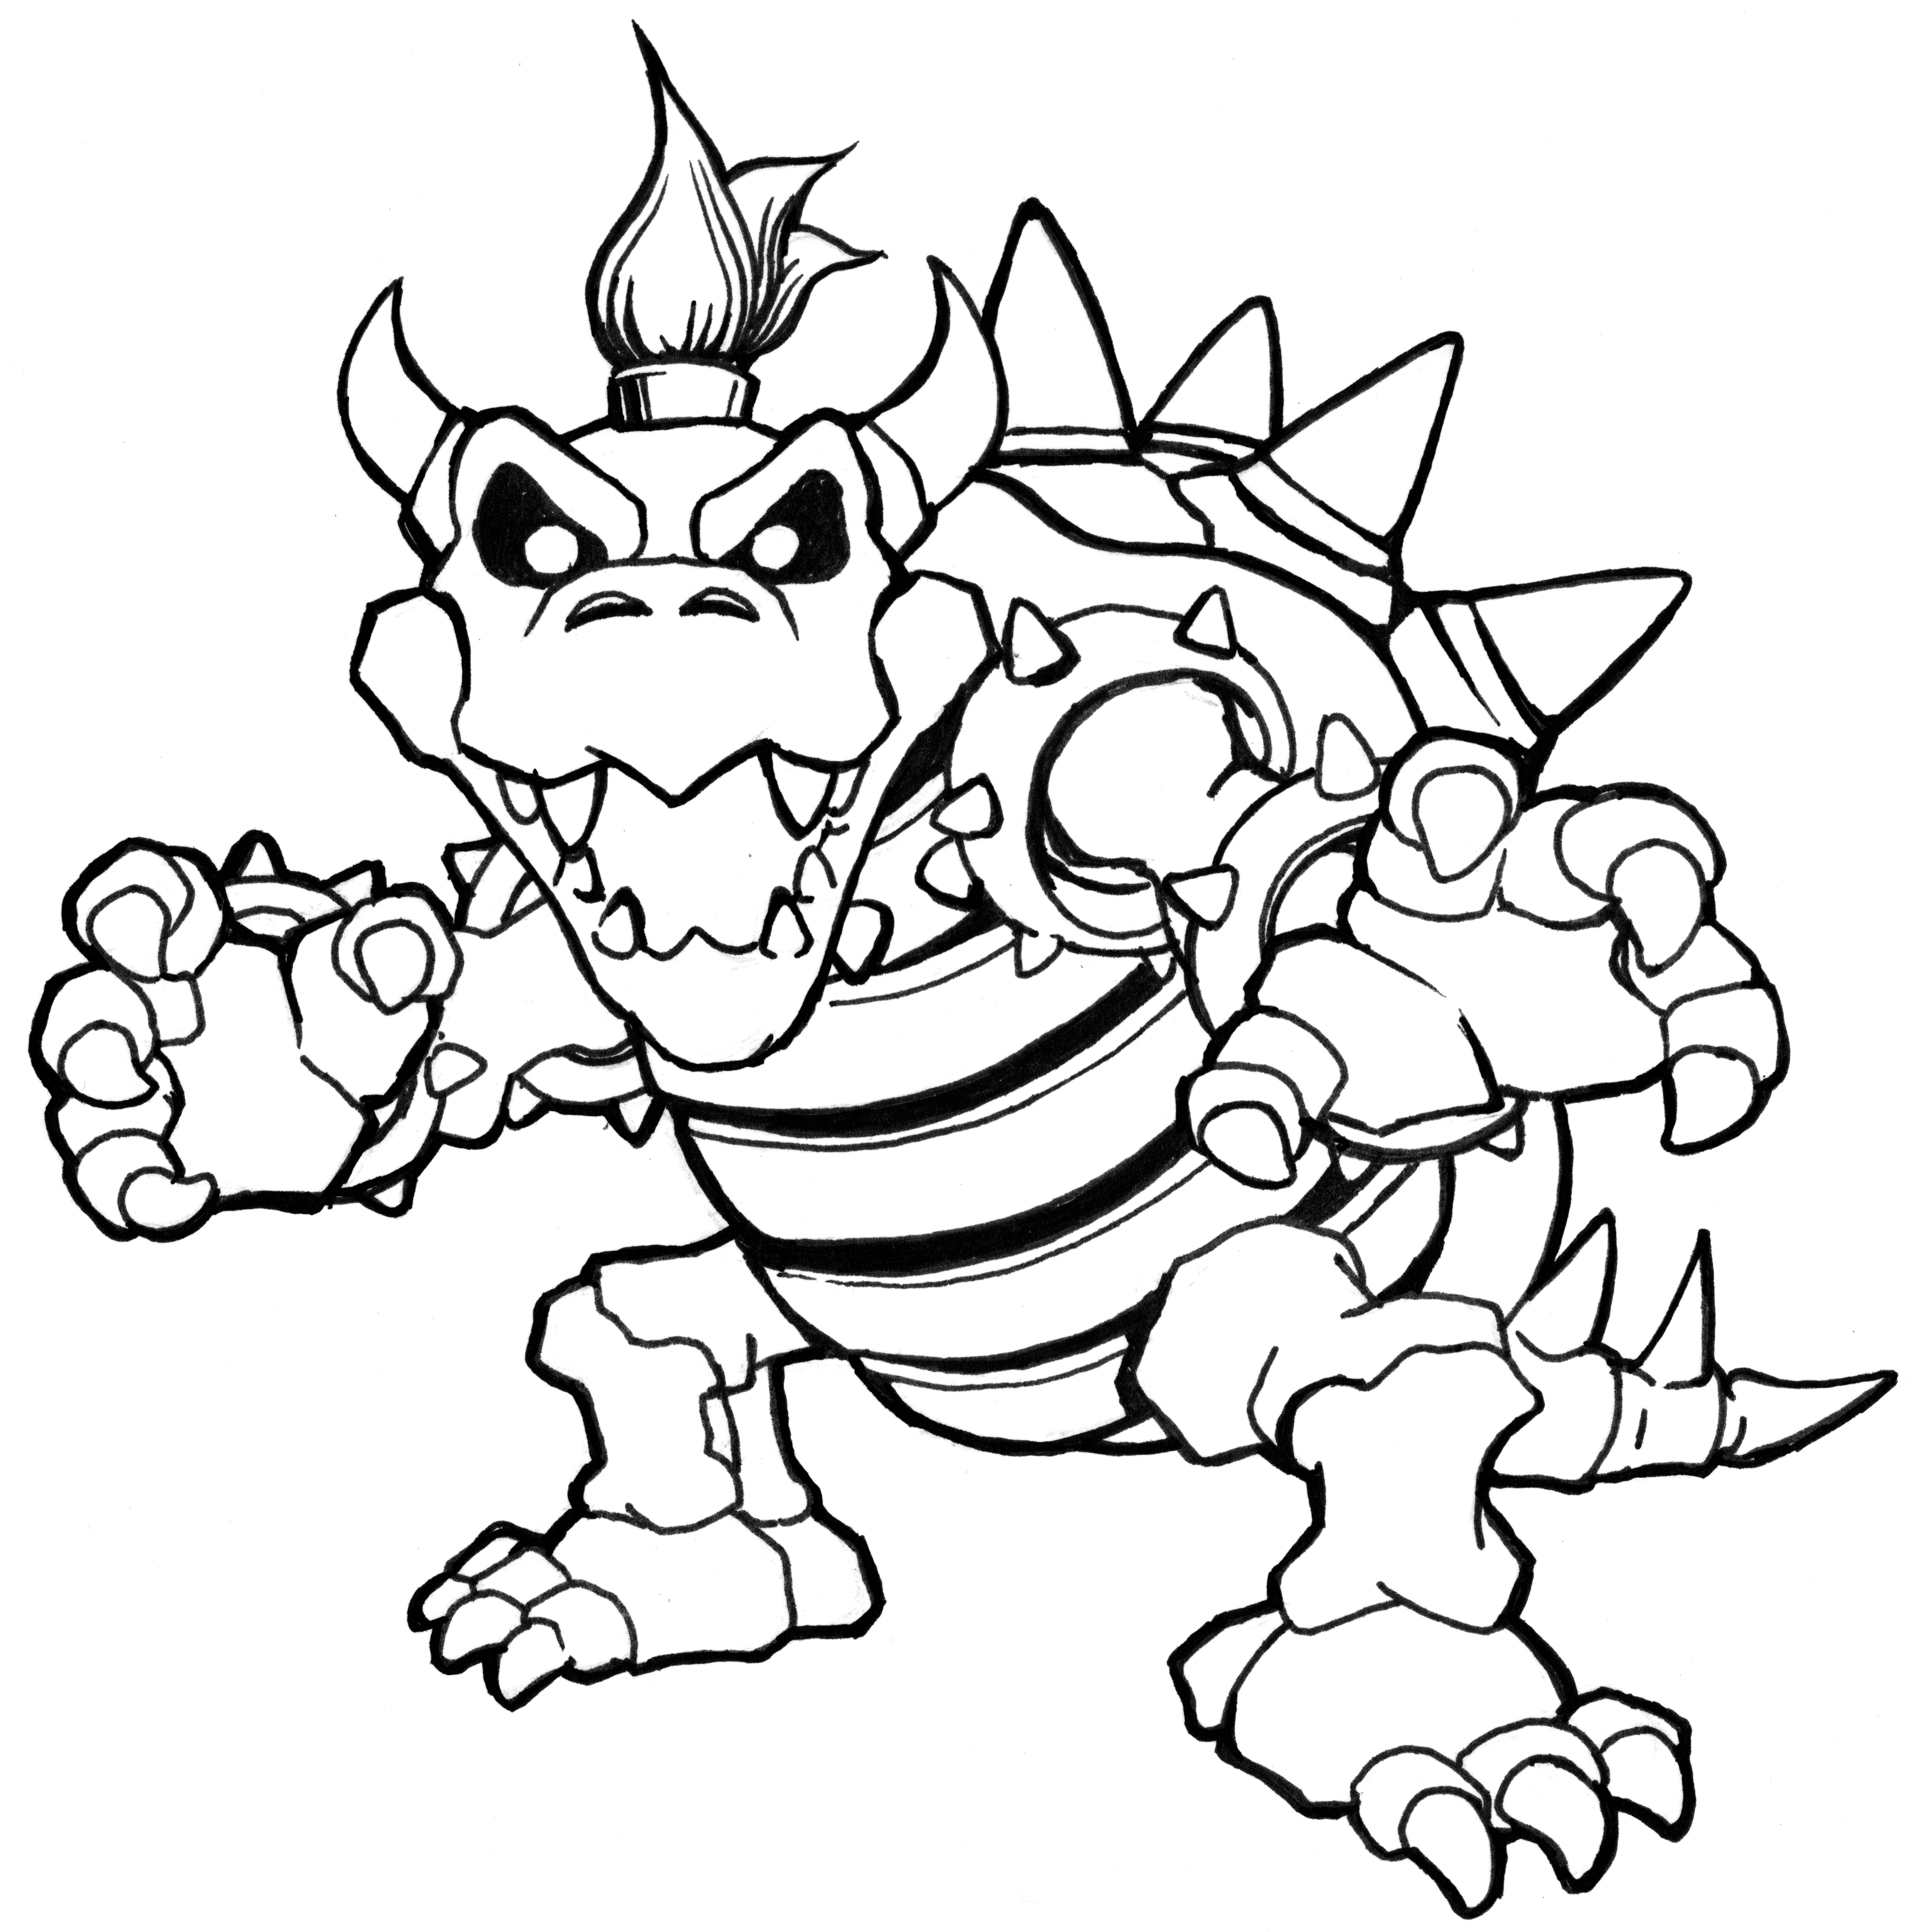 Bowser Coloring Bowser Coloring Pages Bowser Mario Coloring Pages